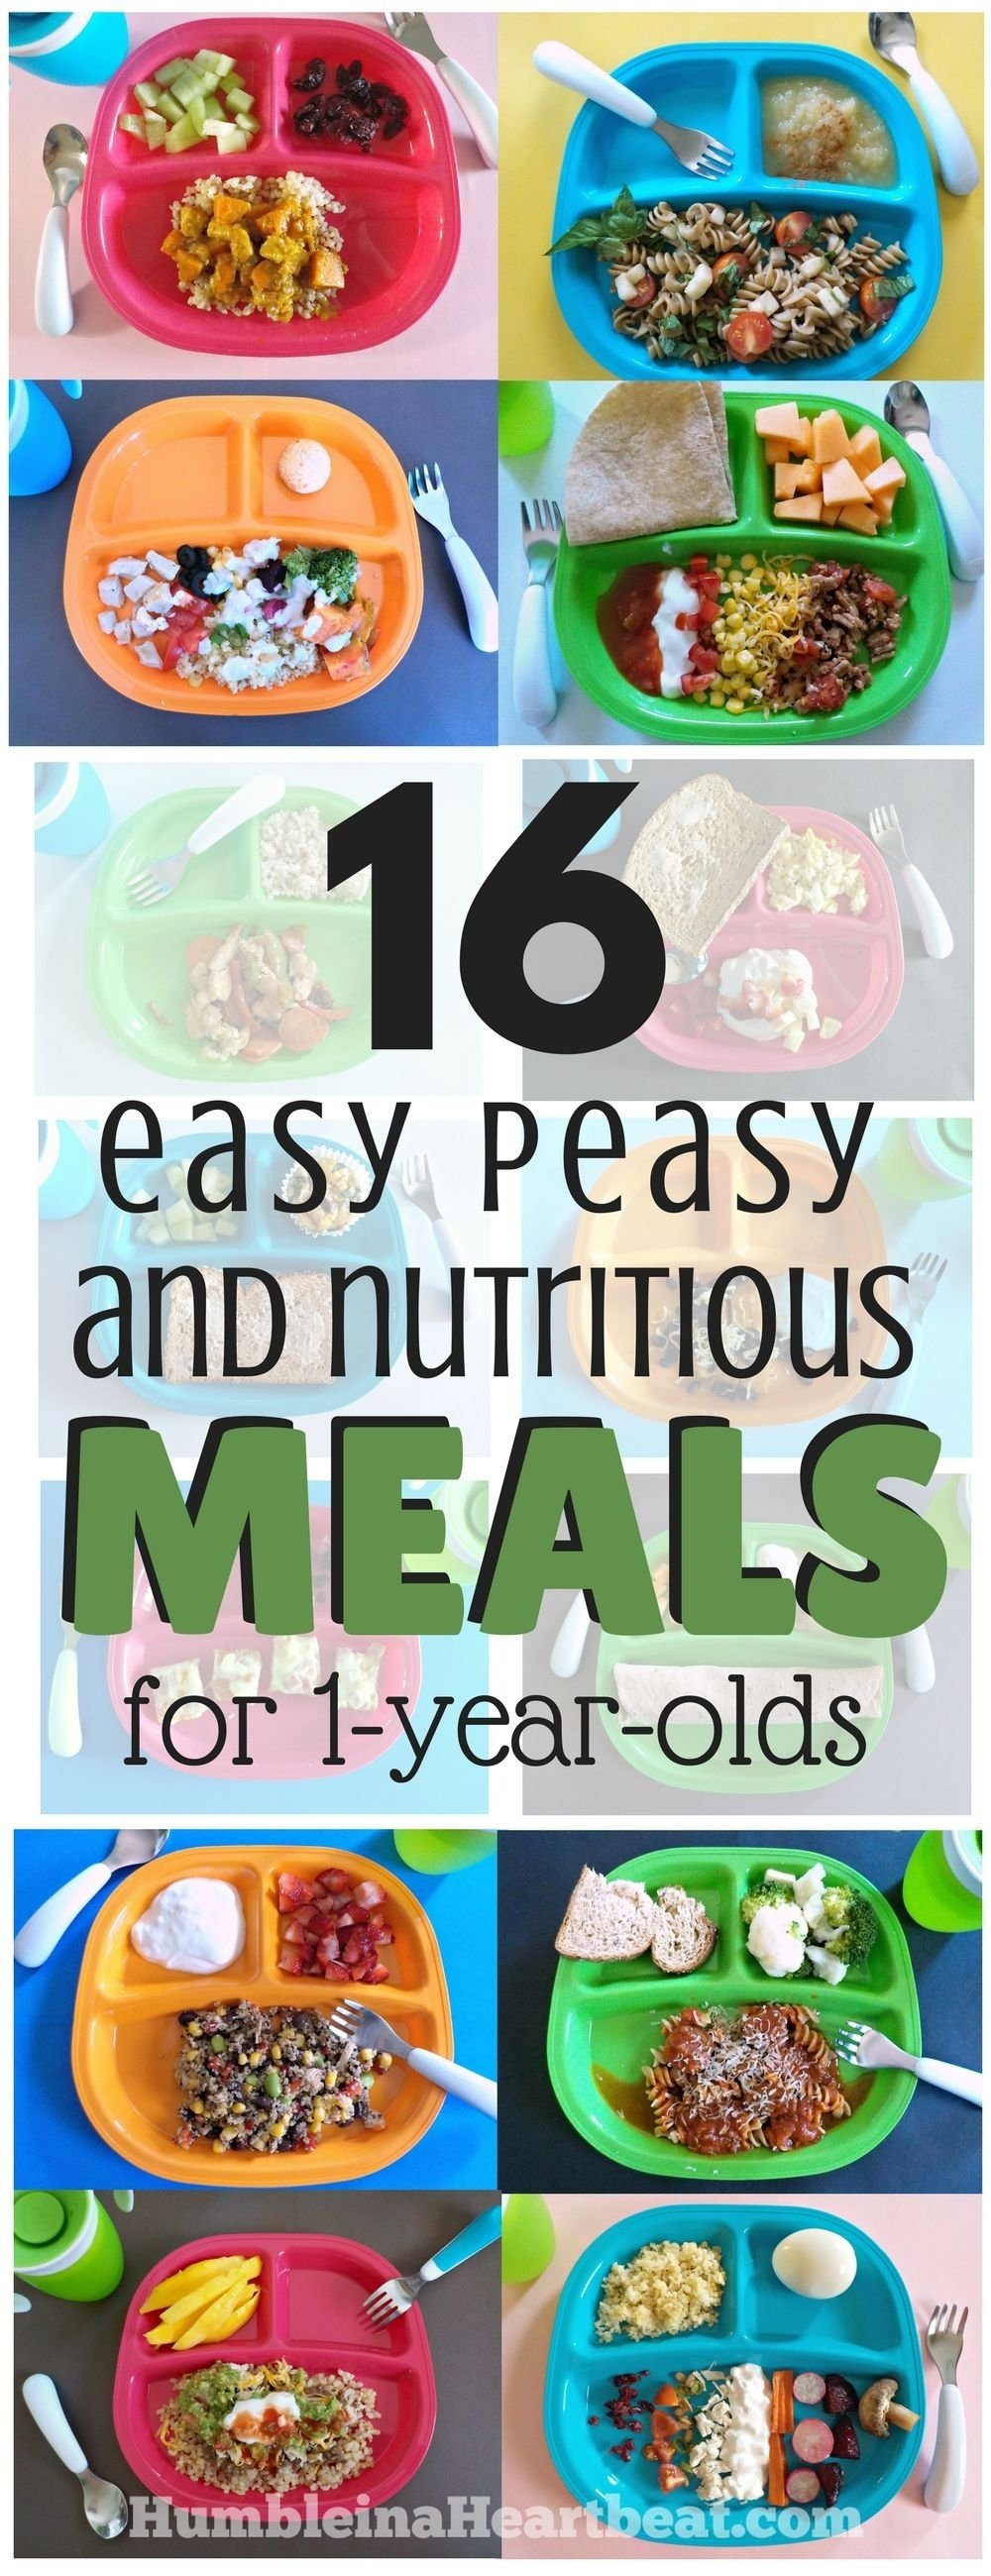 10 Fabulous 1 Year Old Meal Ideas 16 simple meals for your 1 year old that will make you supermom 8 2021